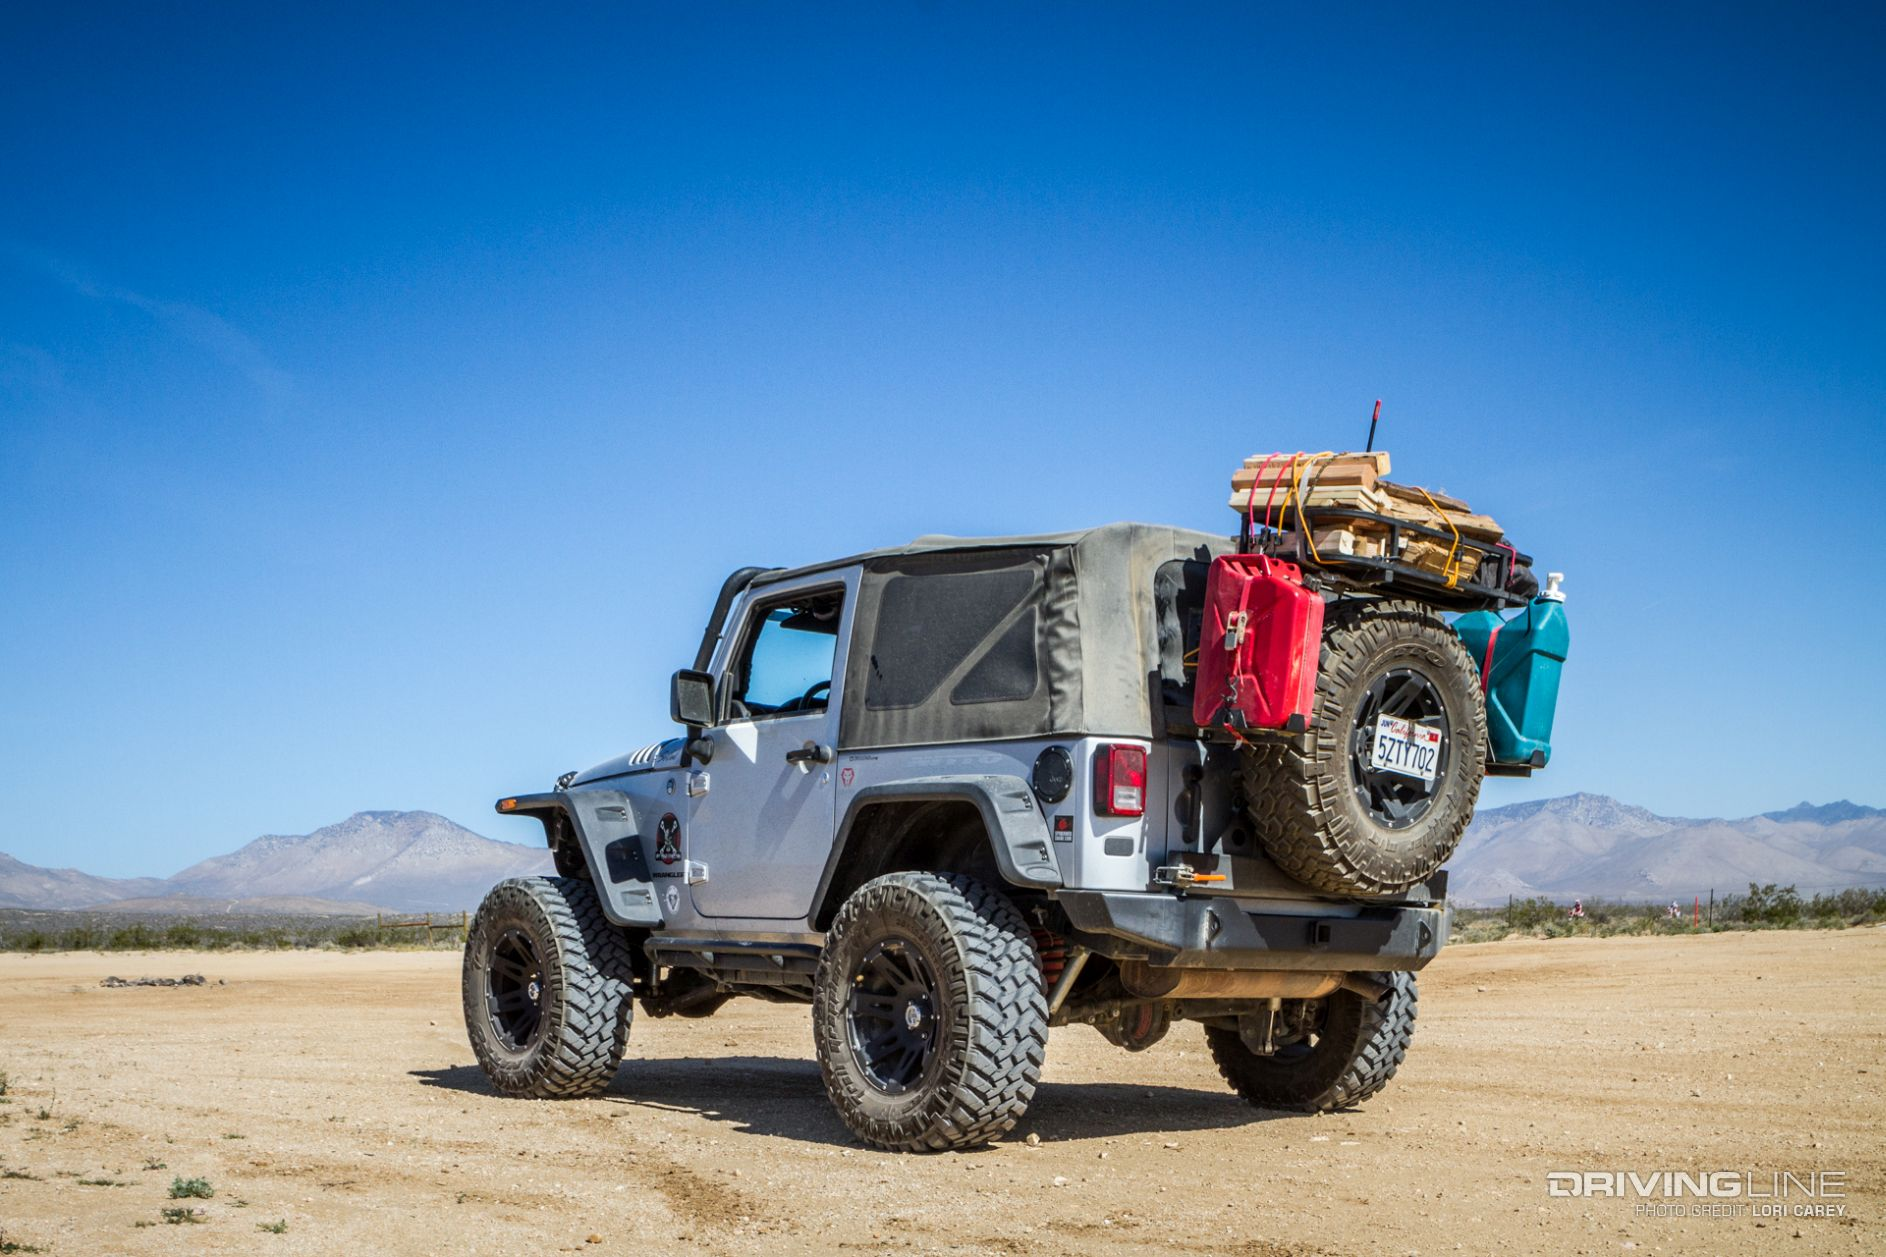 Jeep Wrangler Tj Build >> Pack Mule: How to Fit Overland Essentials in a Compact 4x4 | DrivingLine